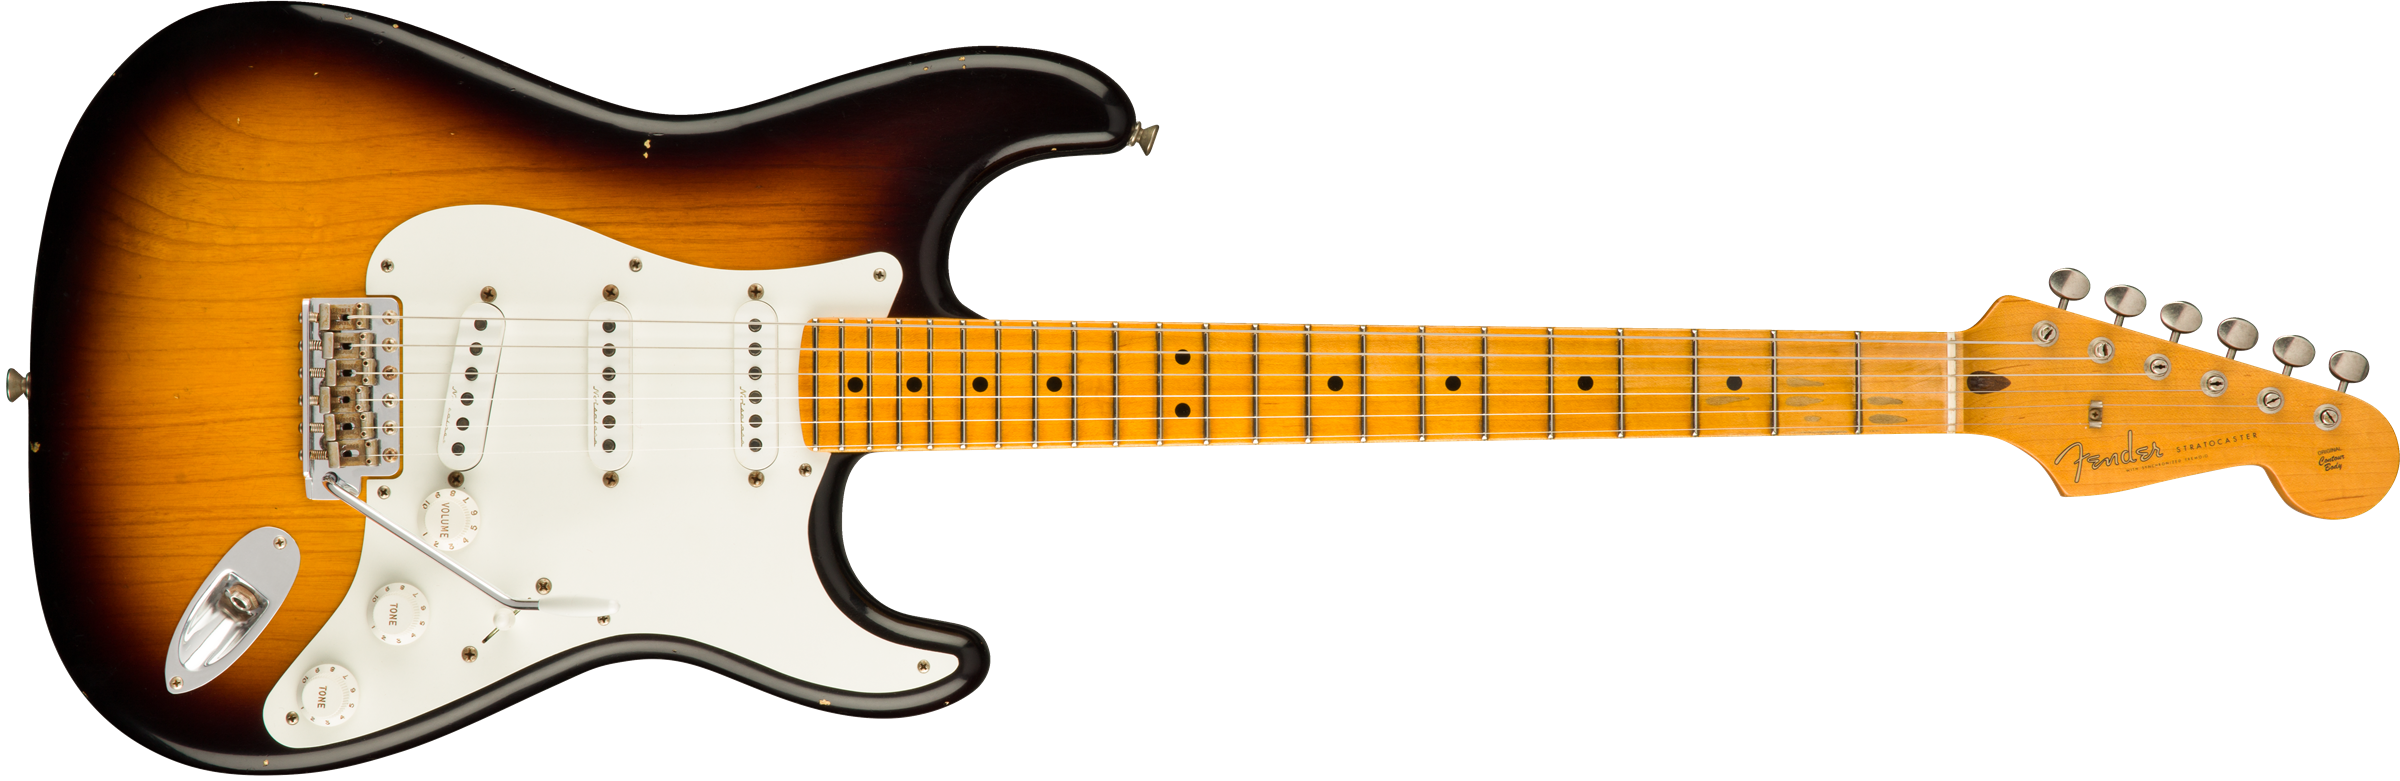 FENDER-Eric-Clapton-Signature-Stratocaster-Journeyman-Relic-Maple-Fingerboard-2-Color-Sunburst-sku-550011468